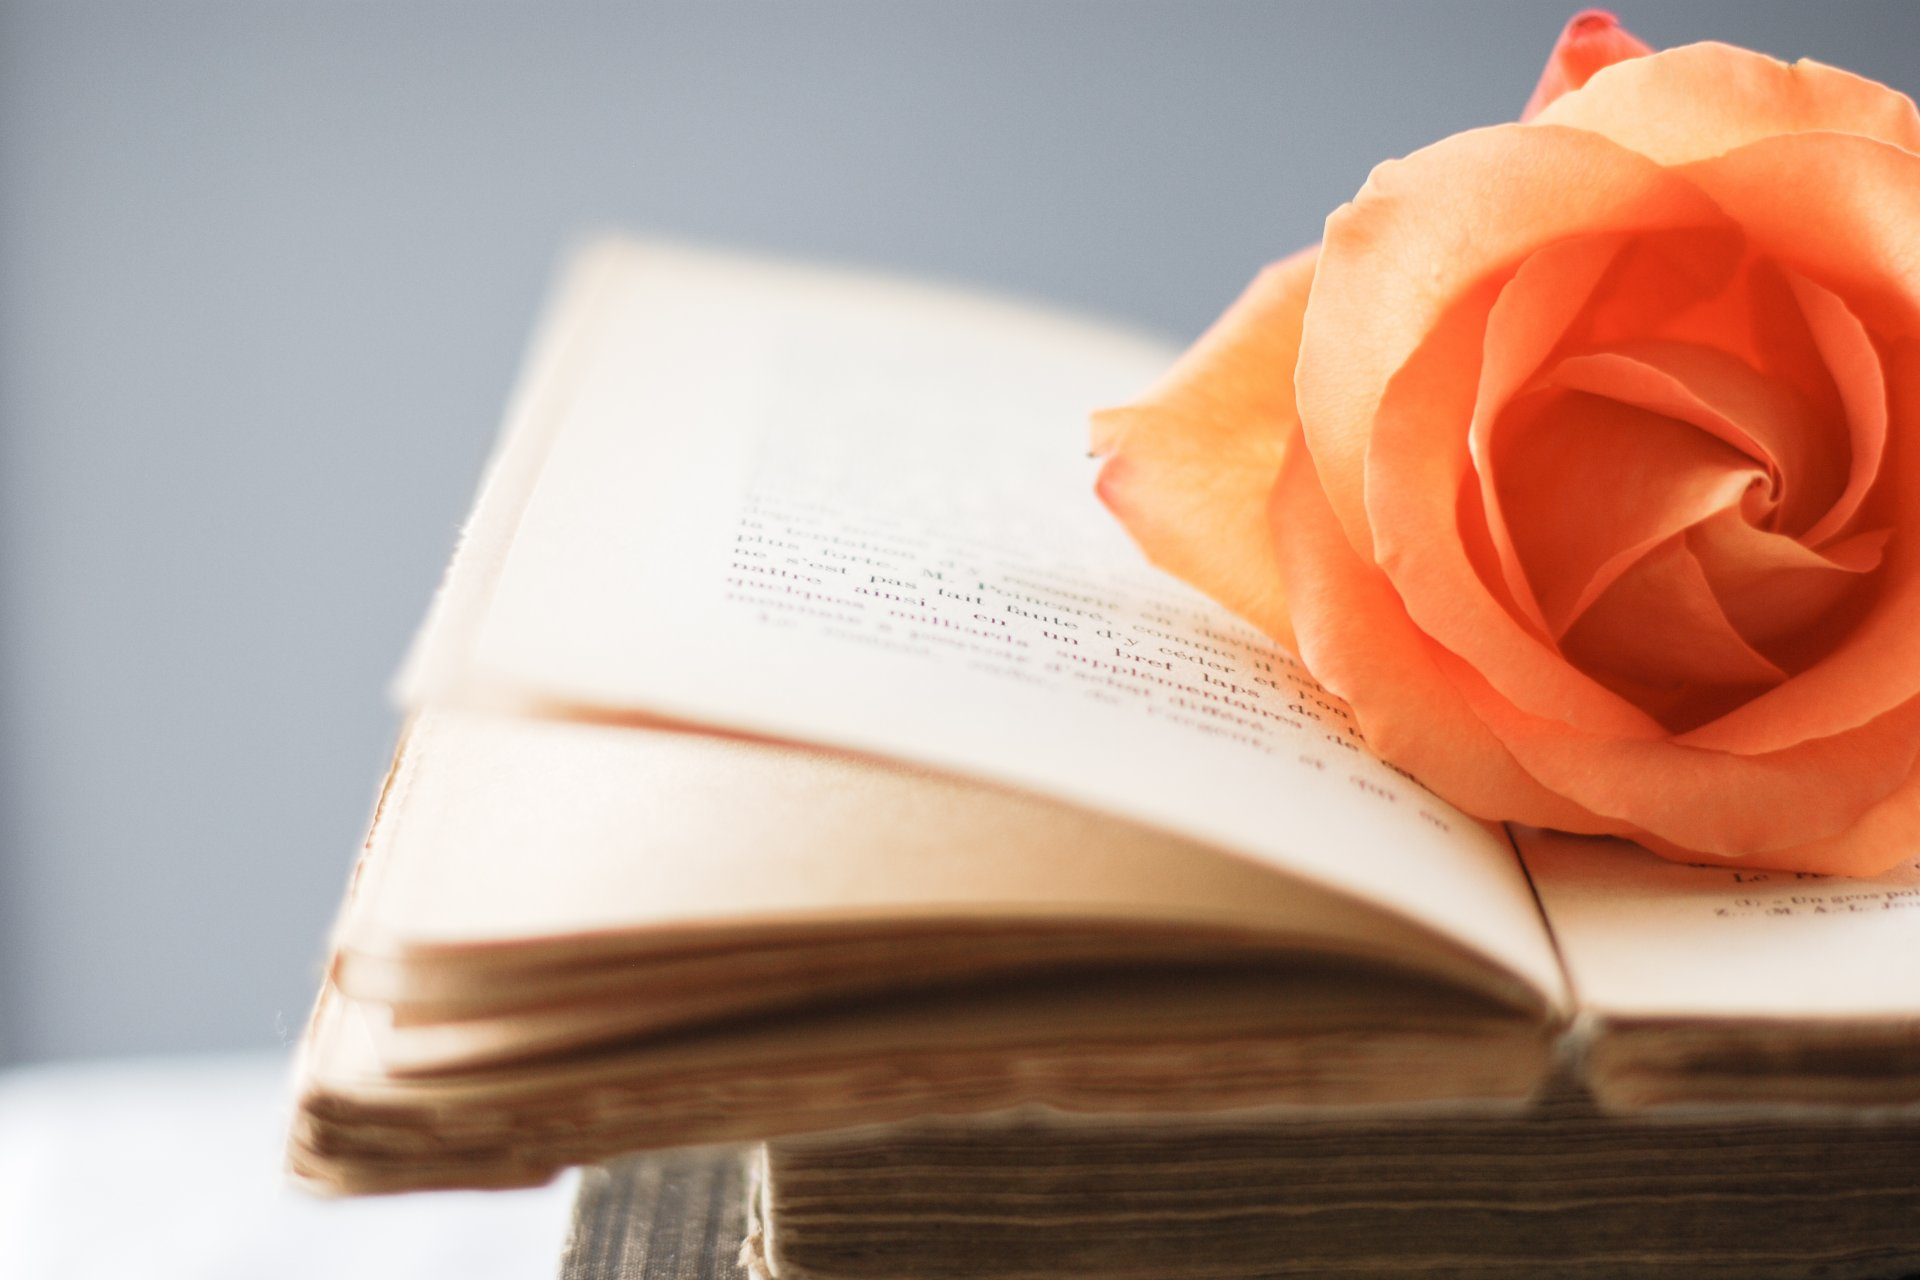 orange rose on book pages wallpaper 49792